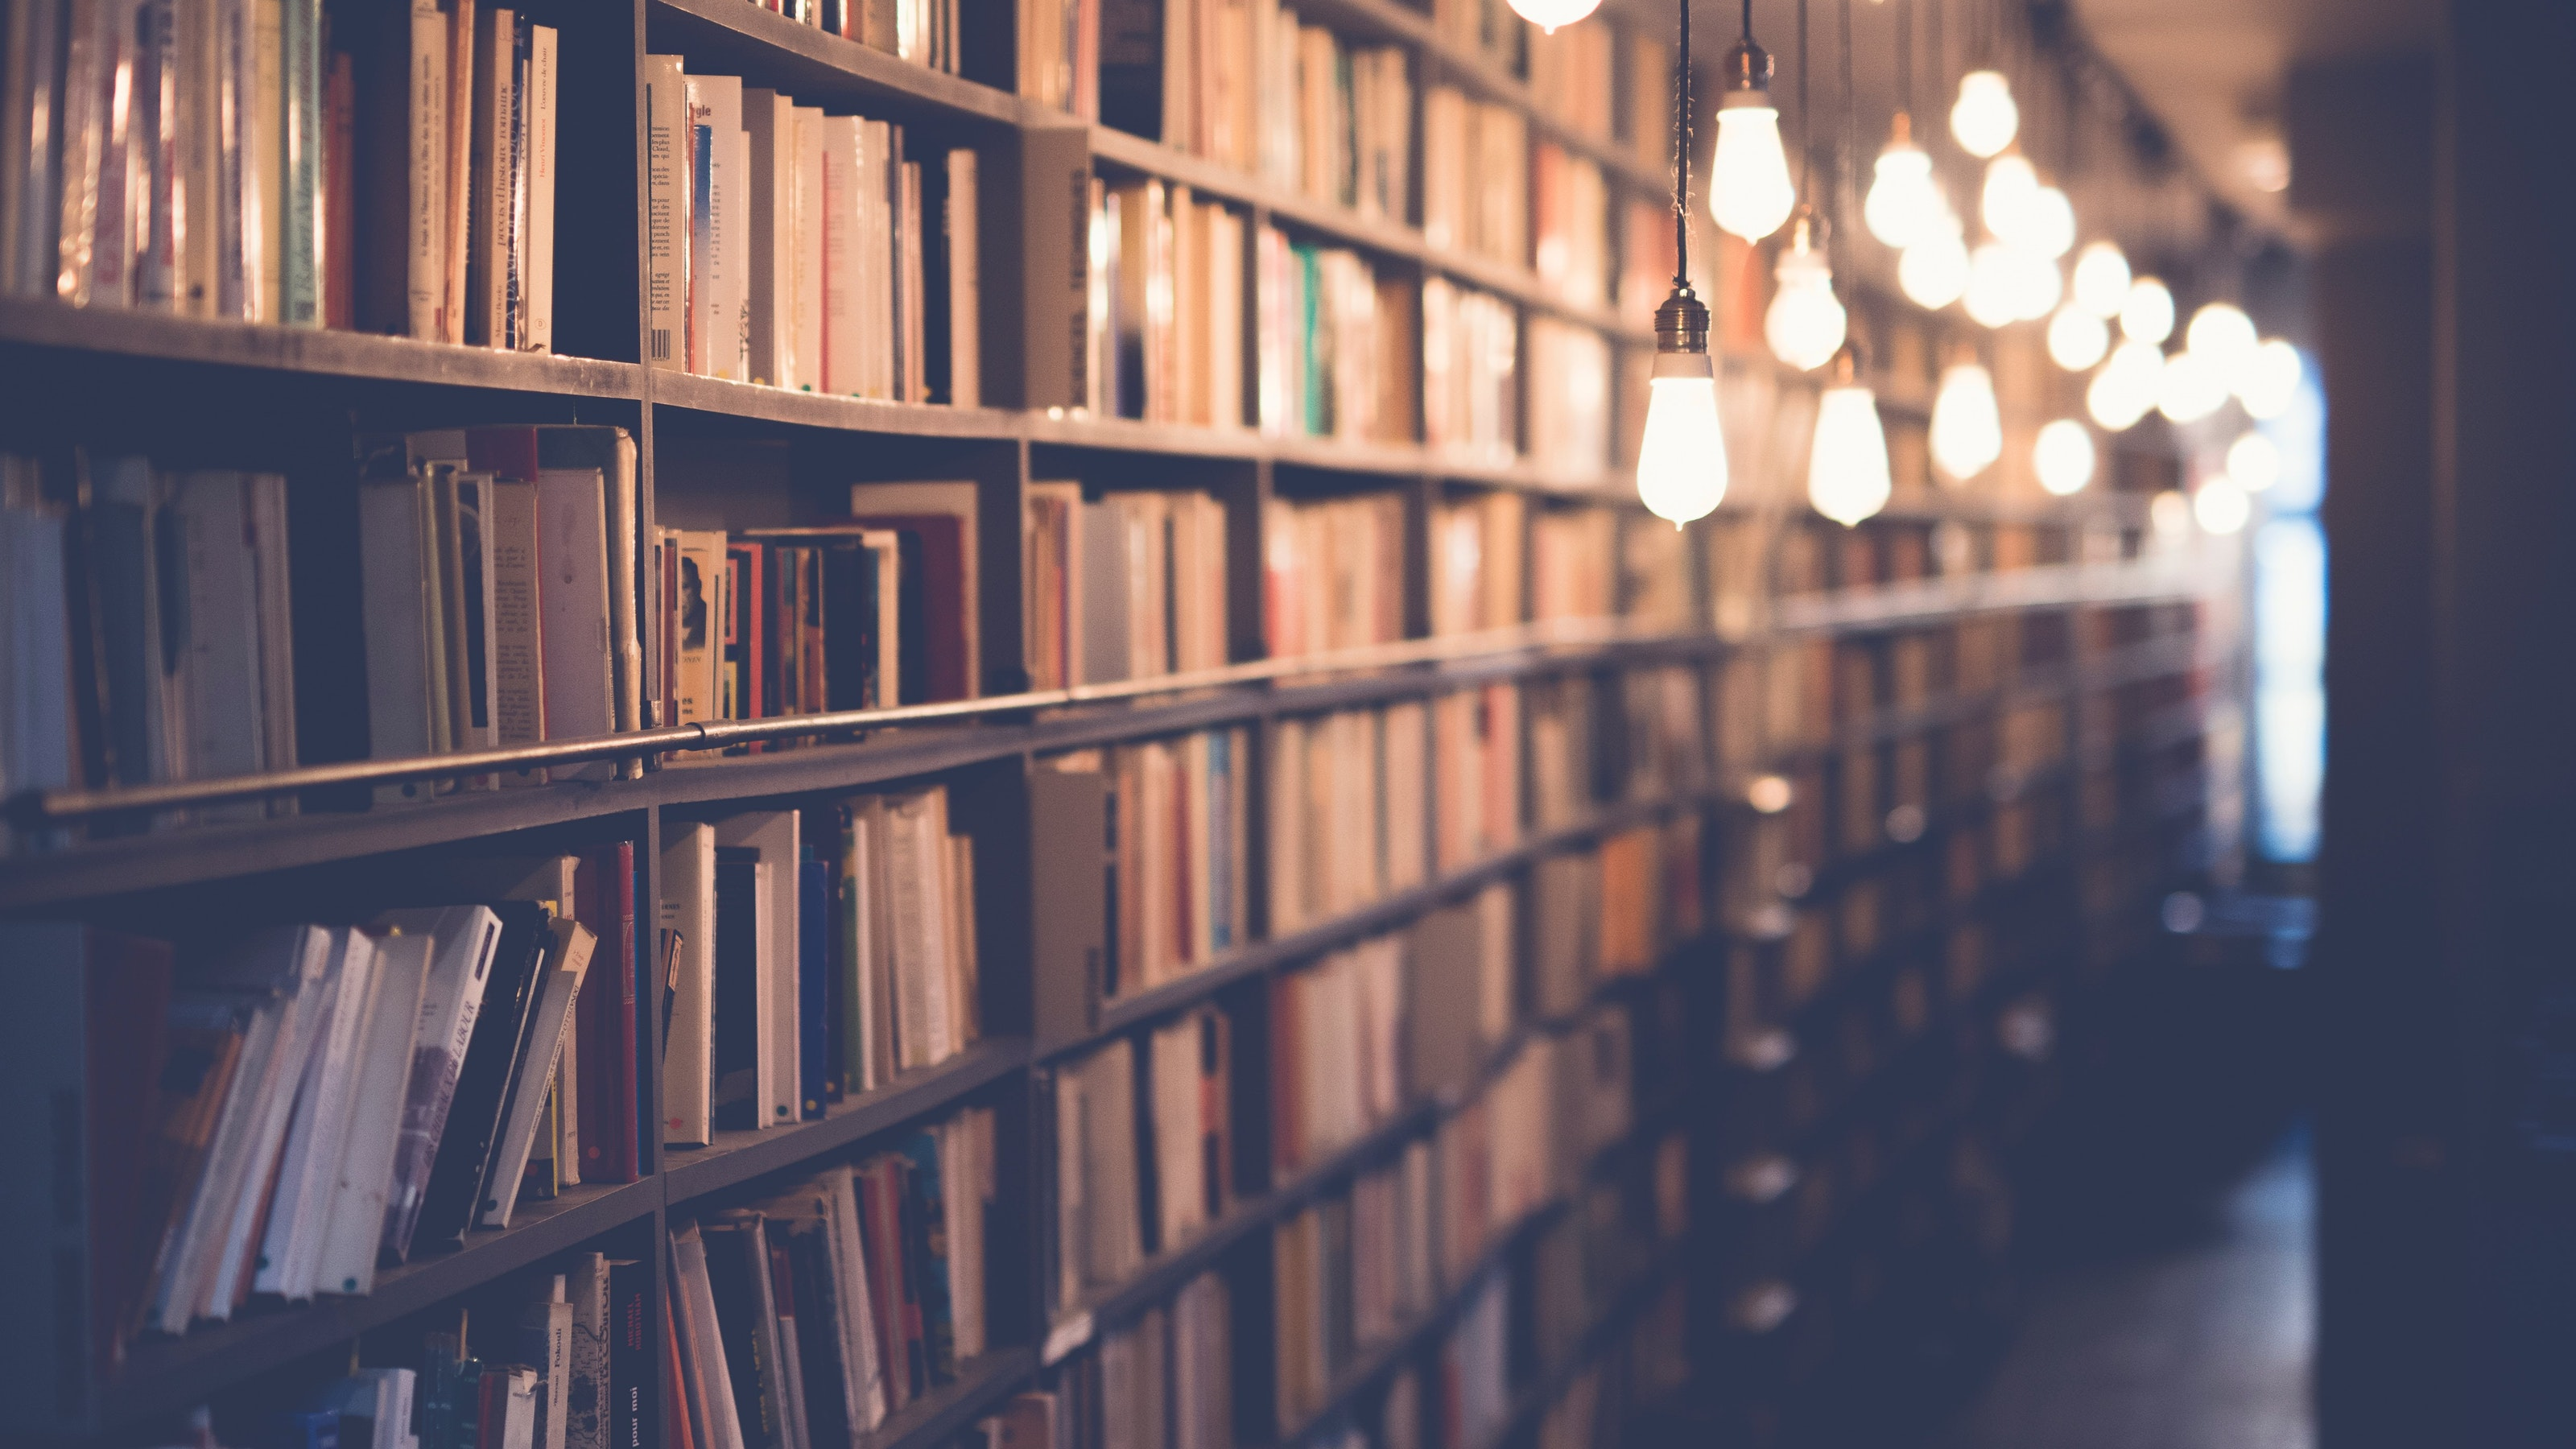 Stacks of books on a tall shelf, lit by several hanging lightbulbs.